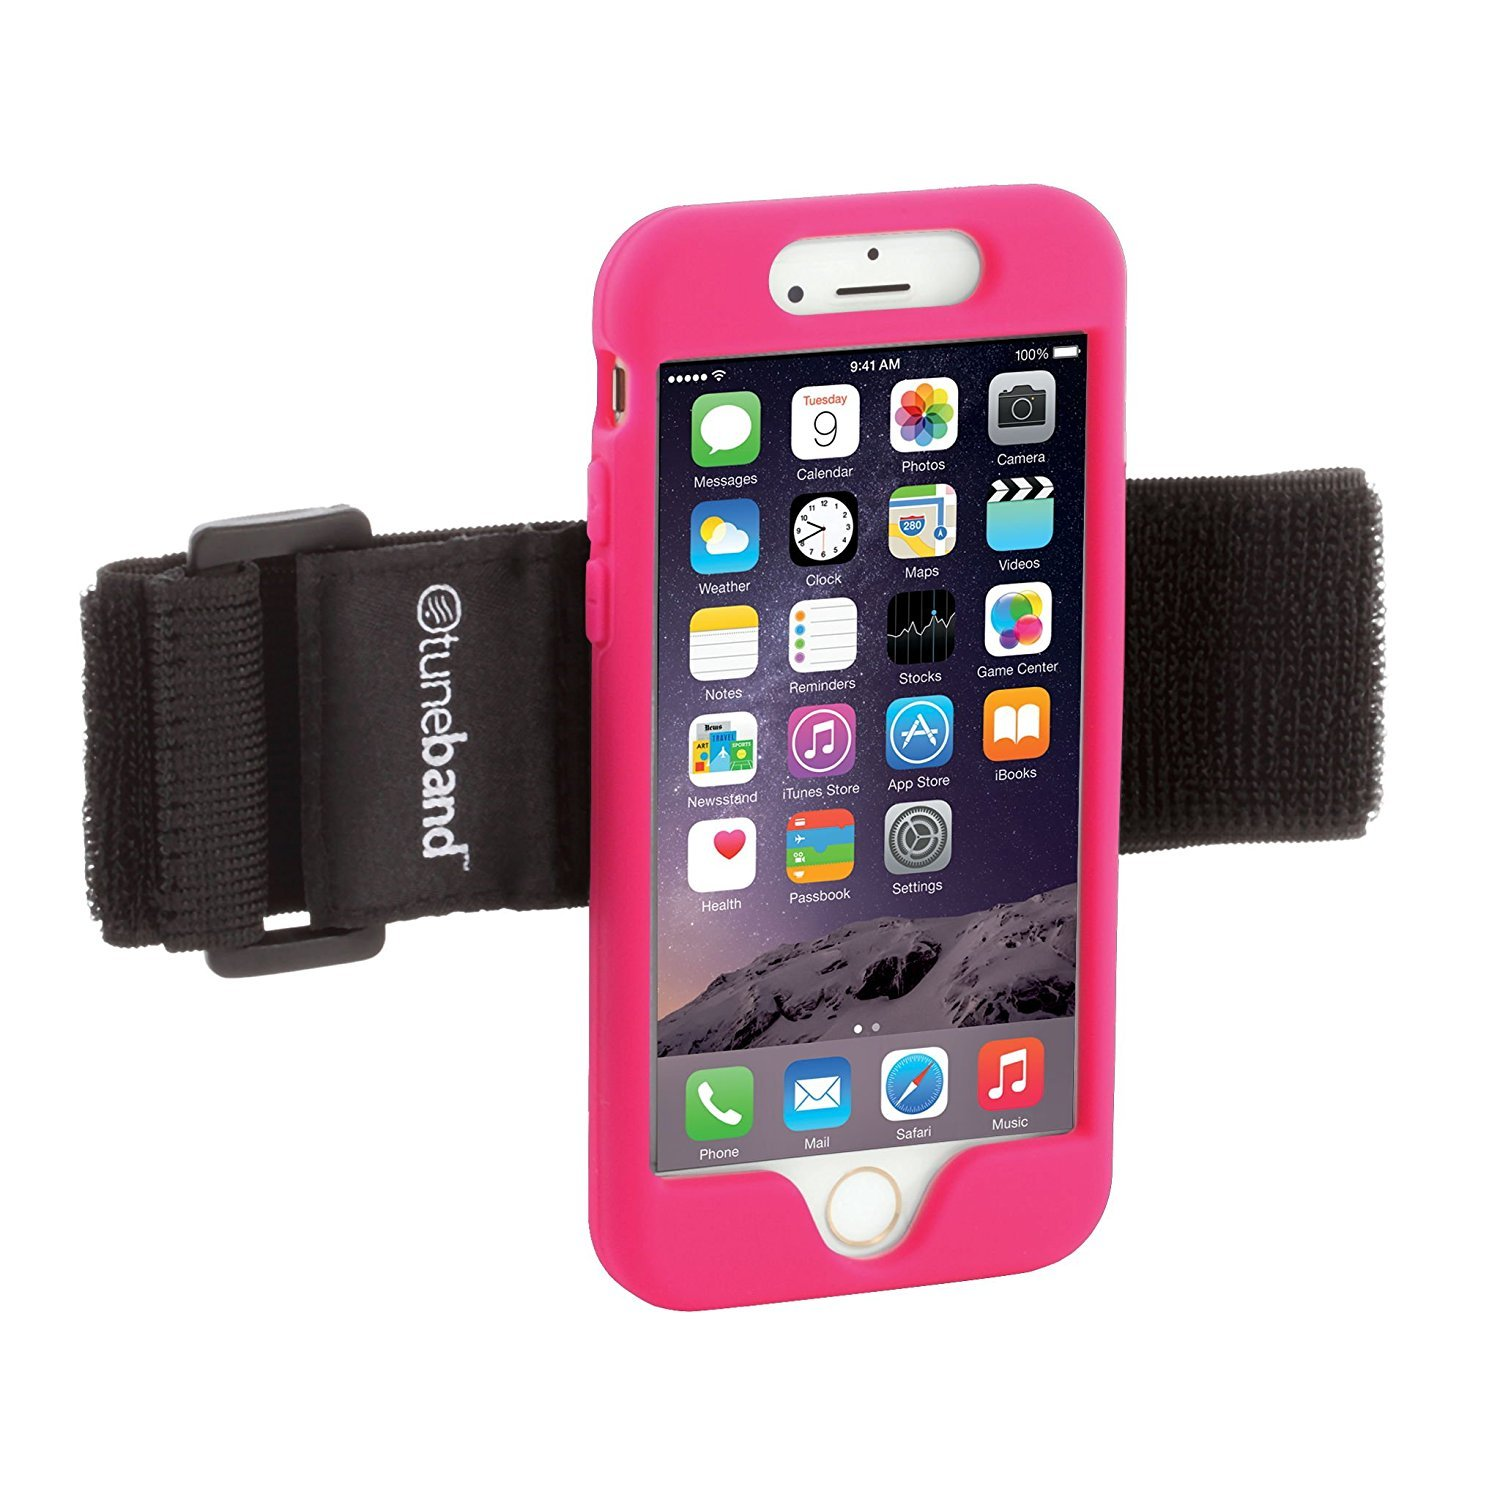 TuneBand LITE Premium Sports Armband with Silicone Skin and Armband (GLOW) Grantwood Technology 0037171338656